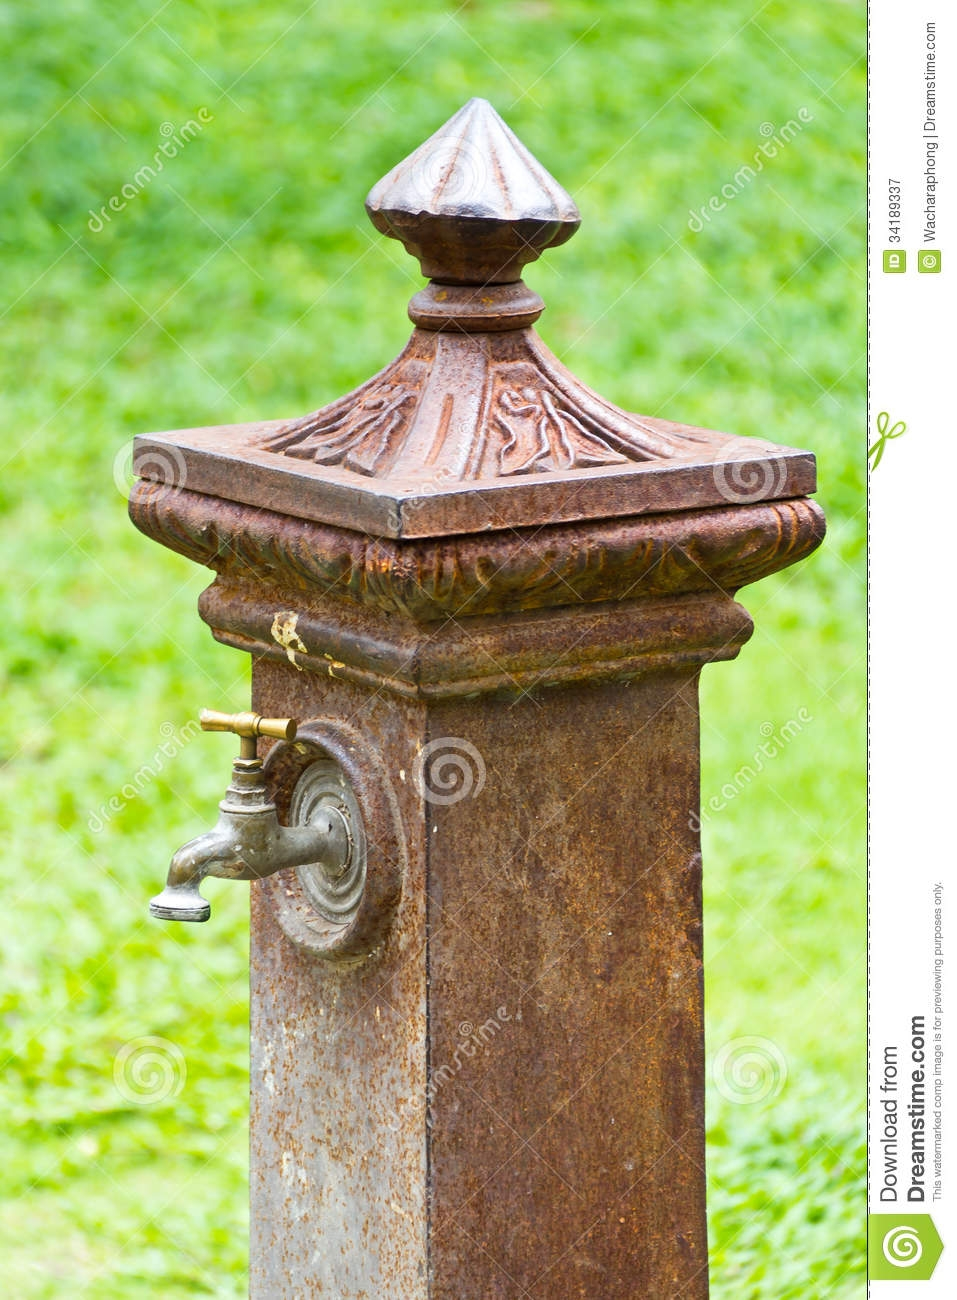 Ideas, garden faucet design ideas faucet extension lee valley tools regarding dimensions 957 x 1300  .